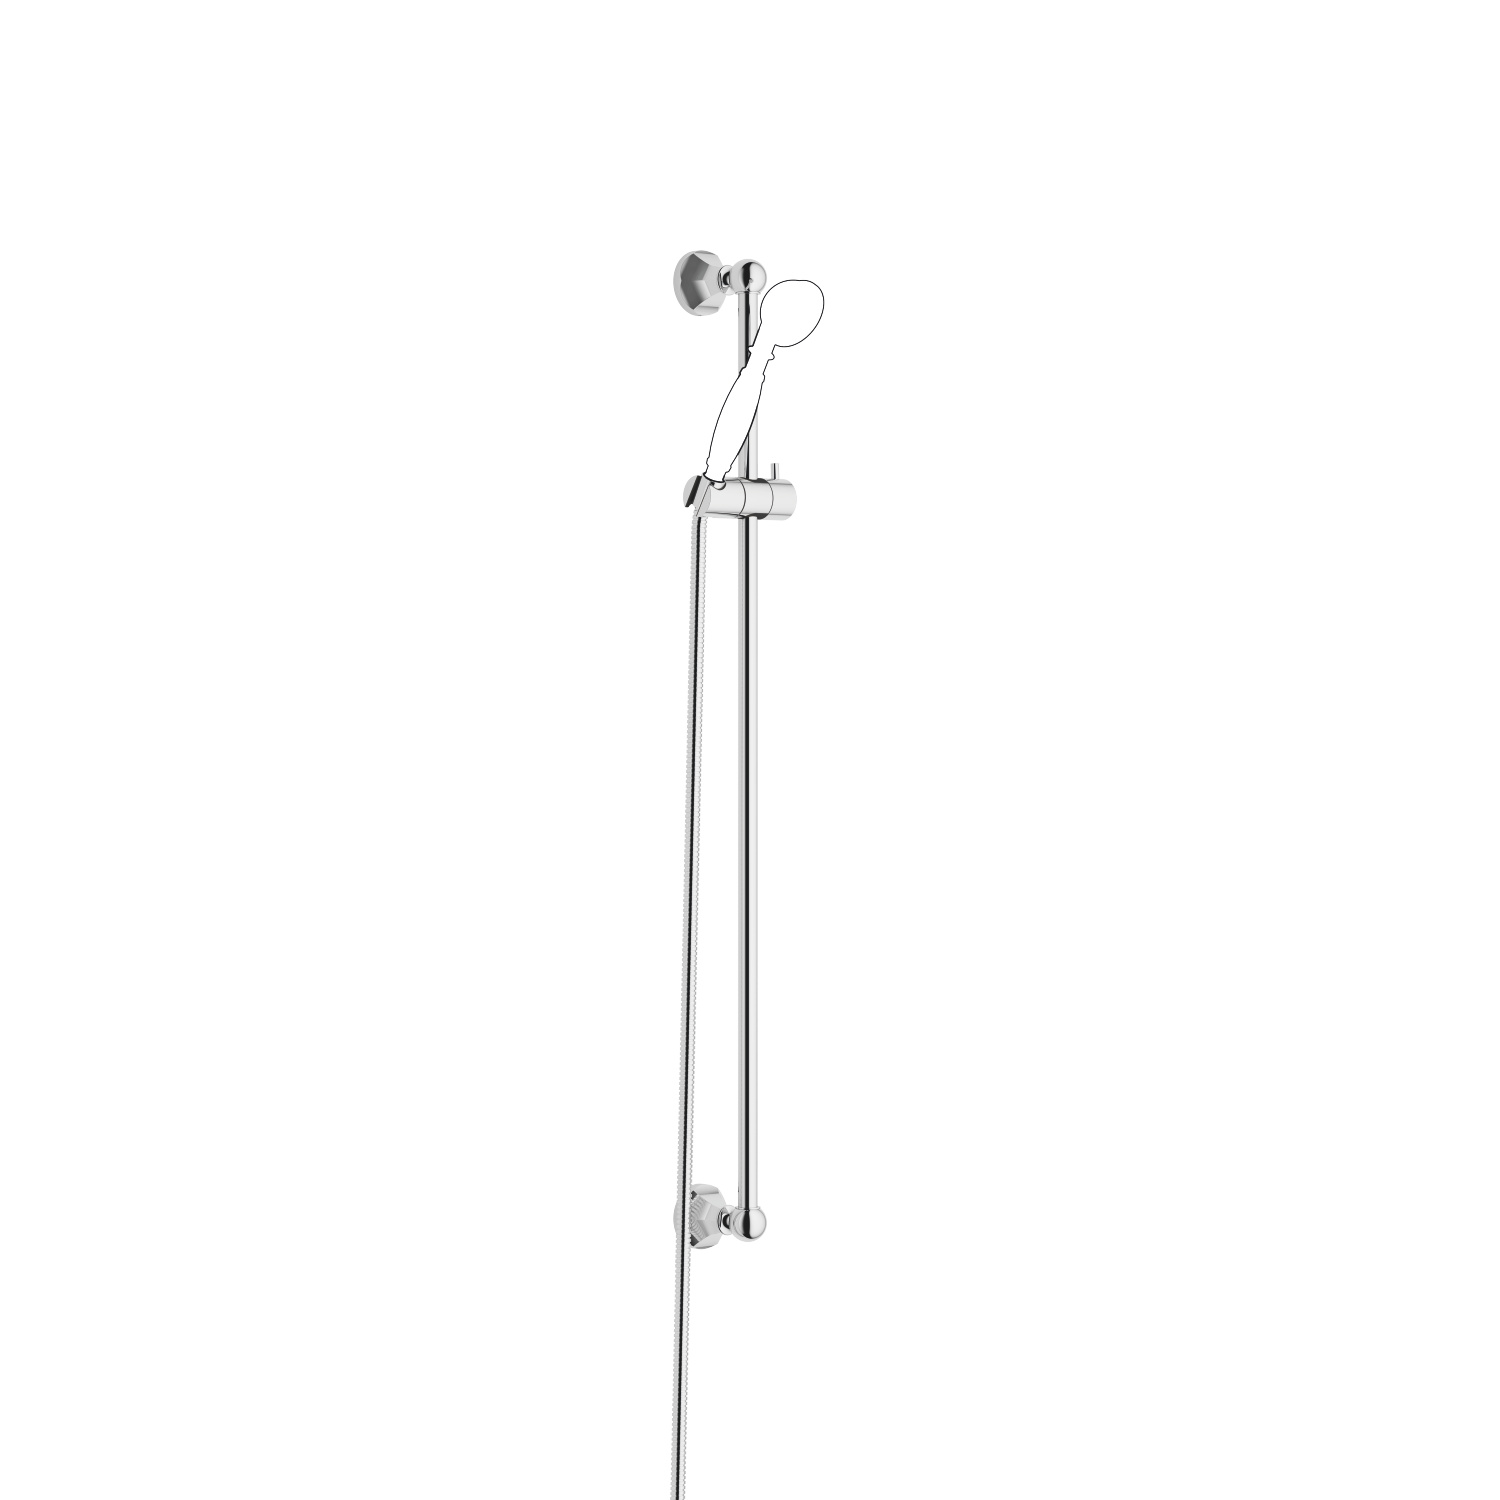 Shower set - polished chrome - 26 413 370-00